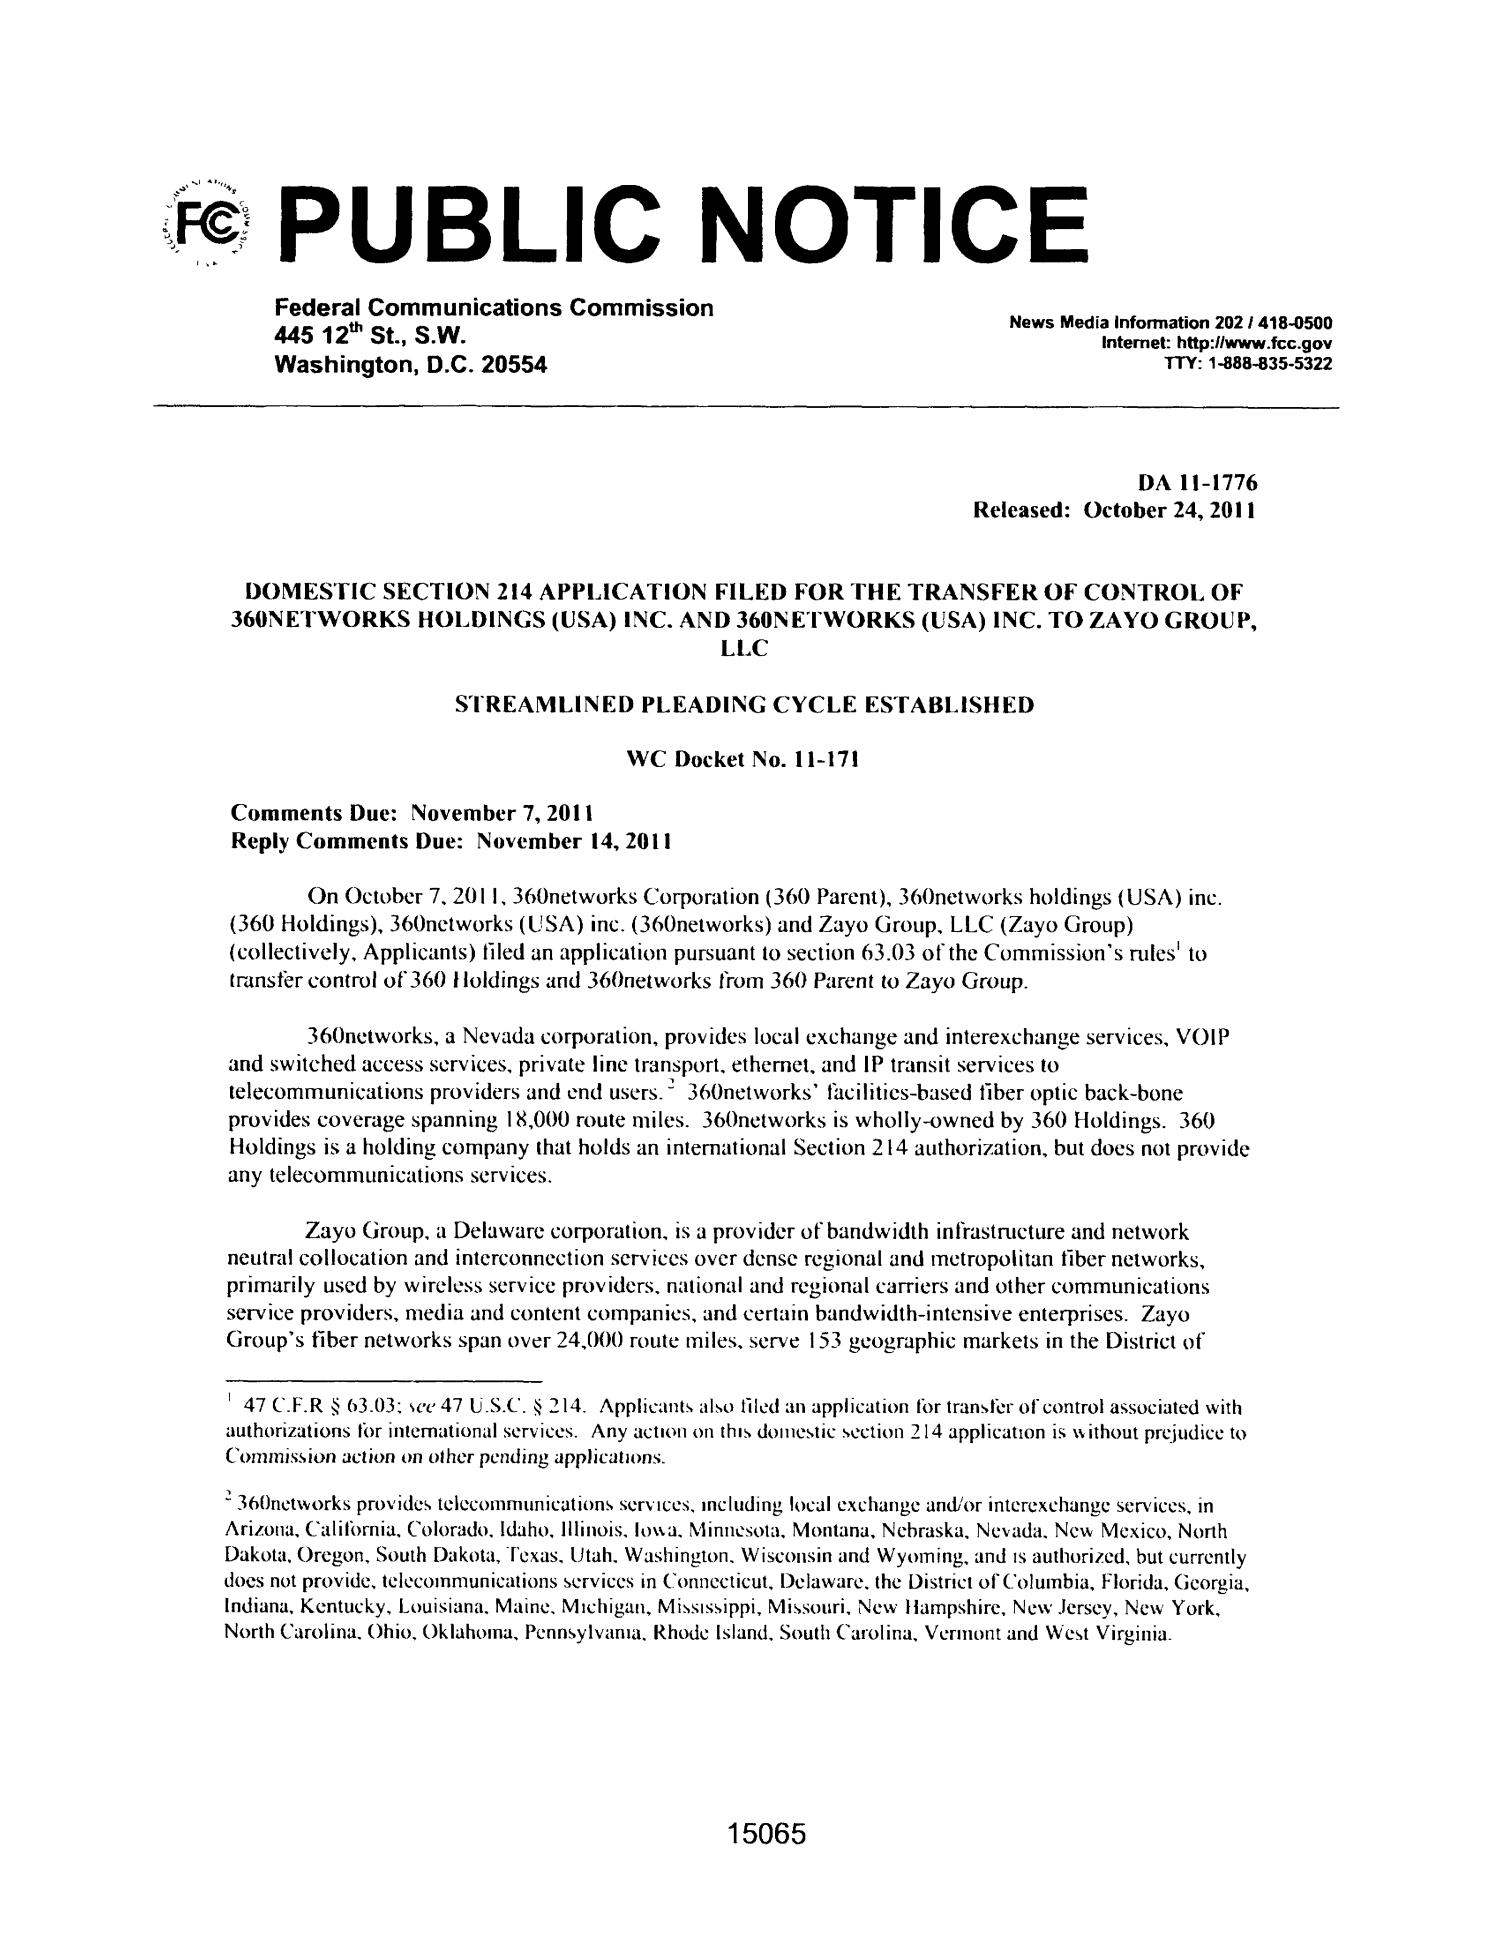 FCC Record, Volume 26, No. 19, Pages 14991 to 15893, October 24 - November 10, 2011                                                                                                      15065